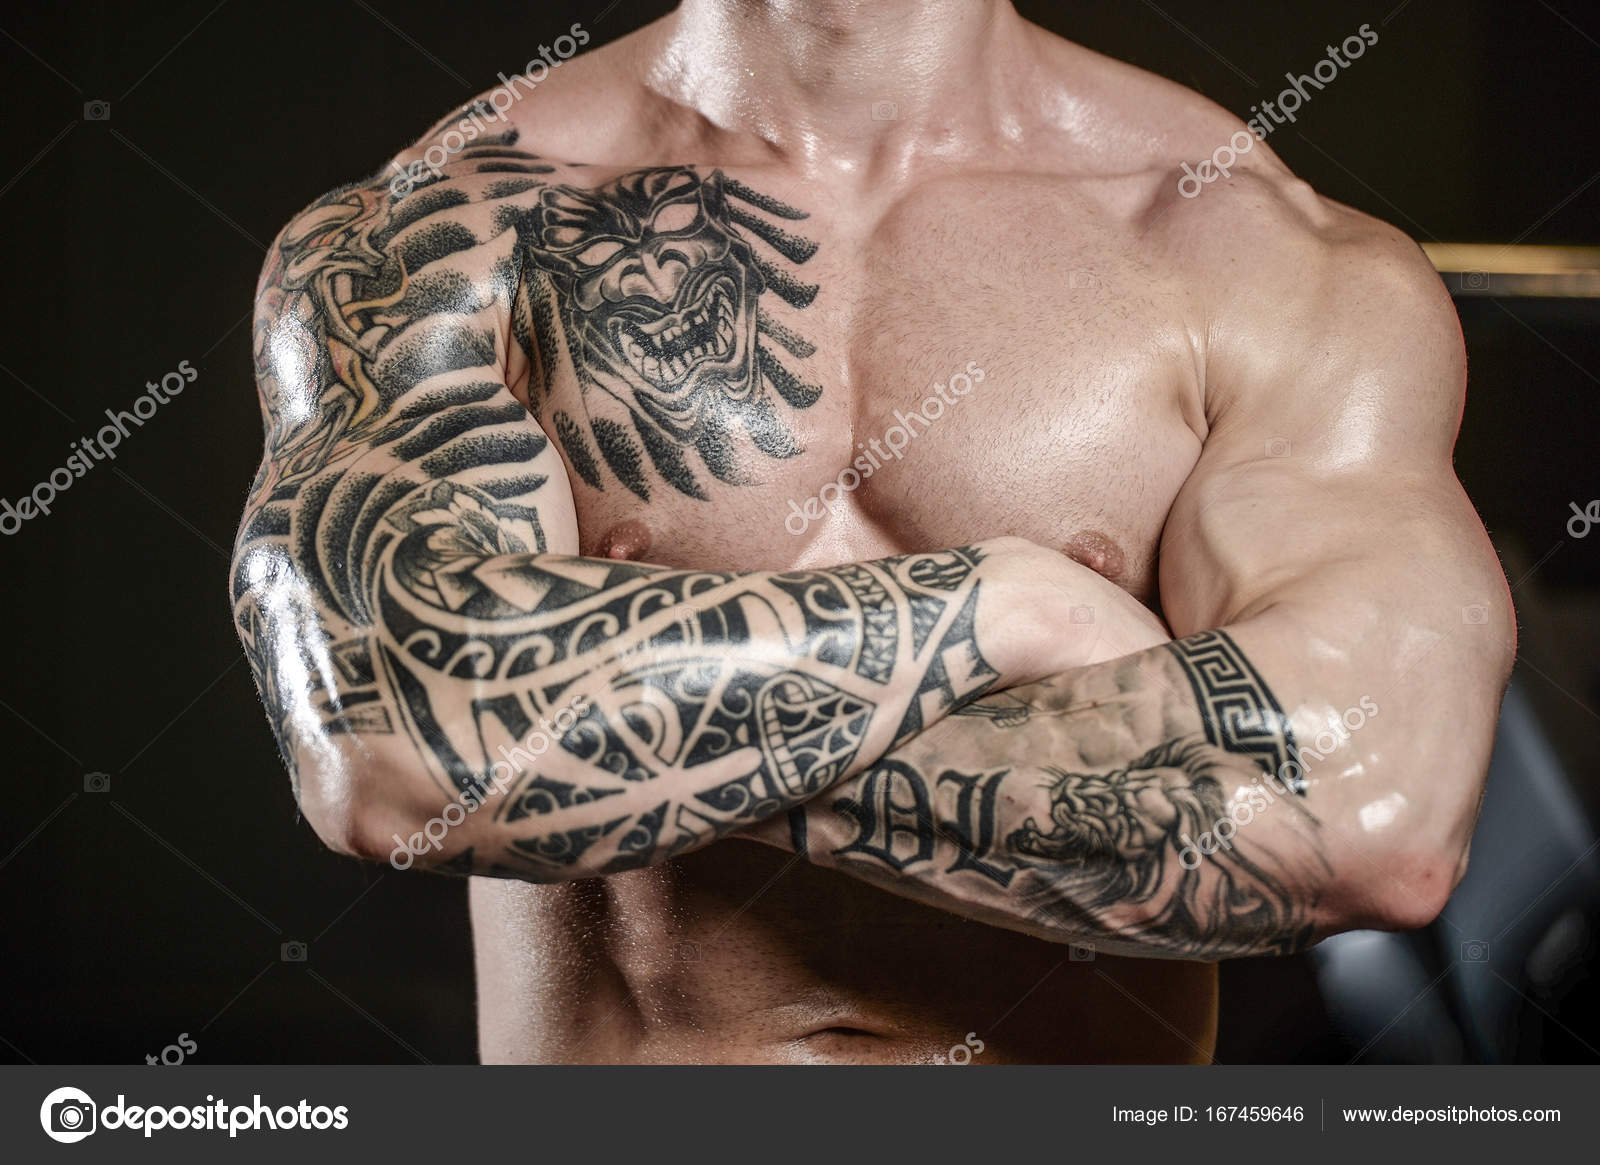 depositphotos_167459646-stock-photo-strong-and-handsome-athletic-young.jpg